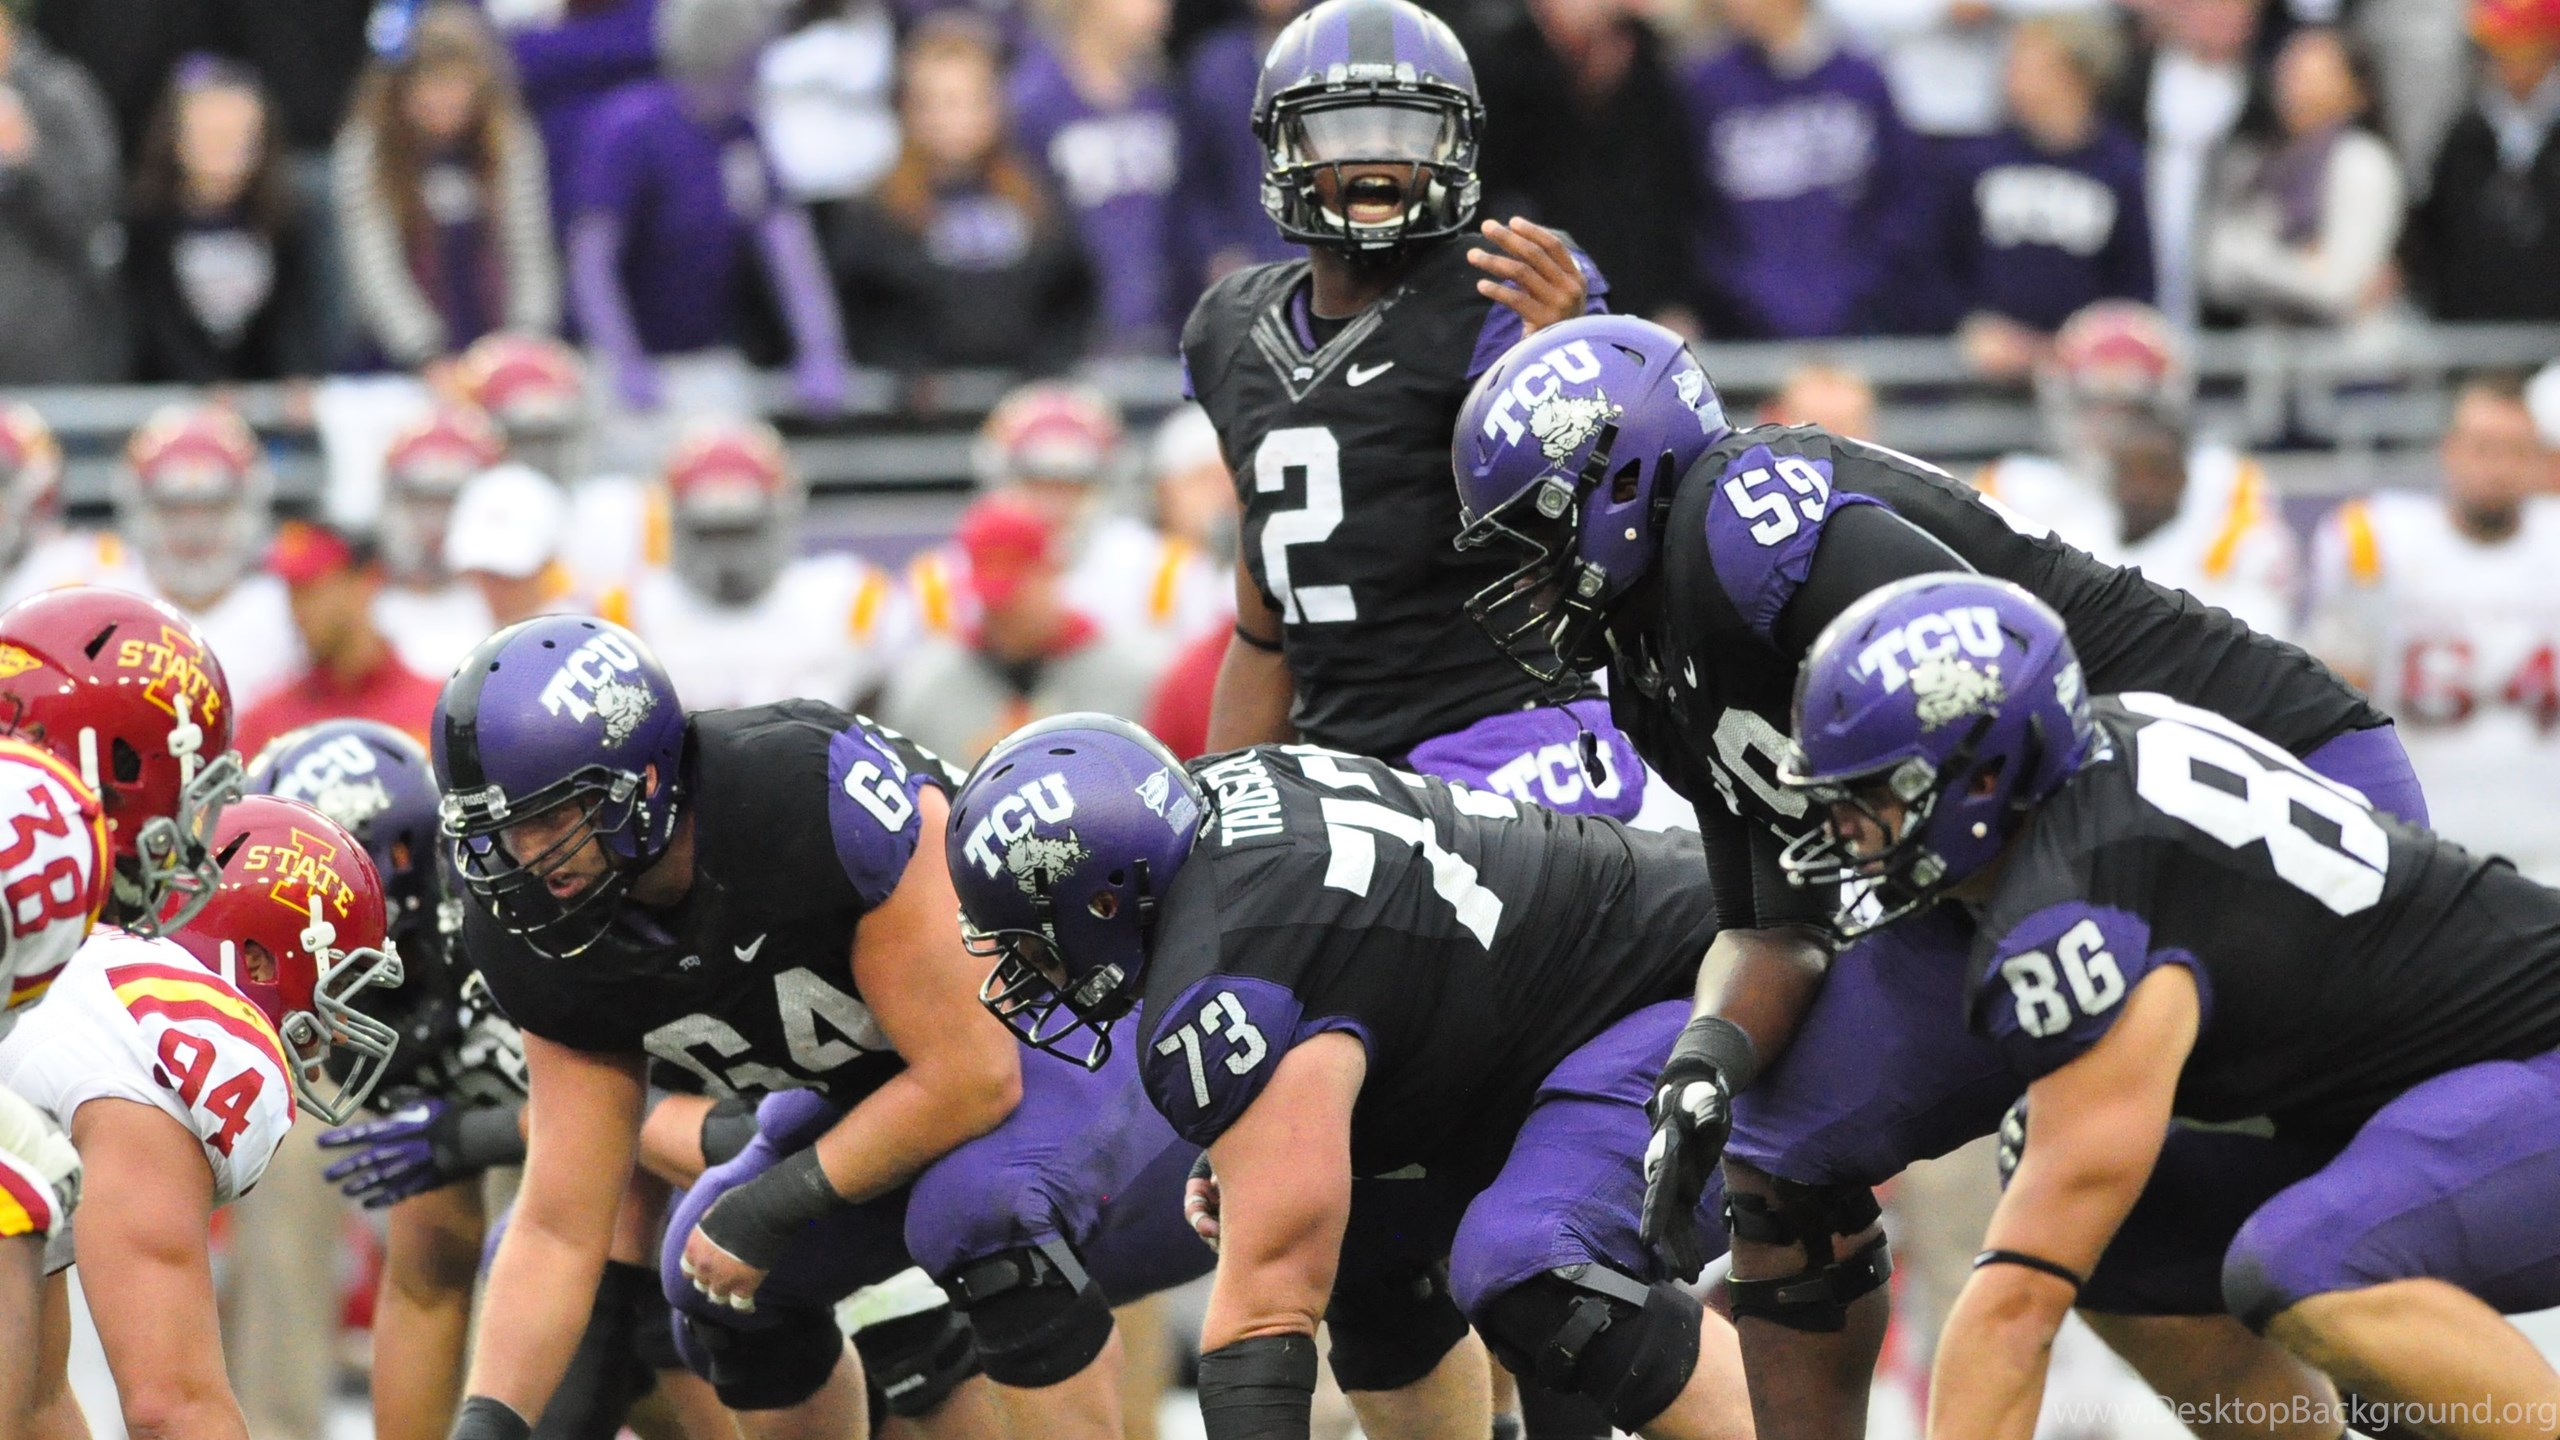 The 2010 TCU Horned Frogs football team represented Texas Christian University TCU in the 2010 NCAA Division I FBS football season The team was coached by tenth